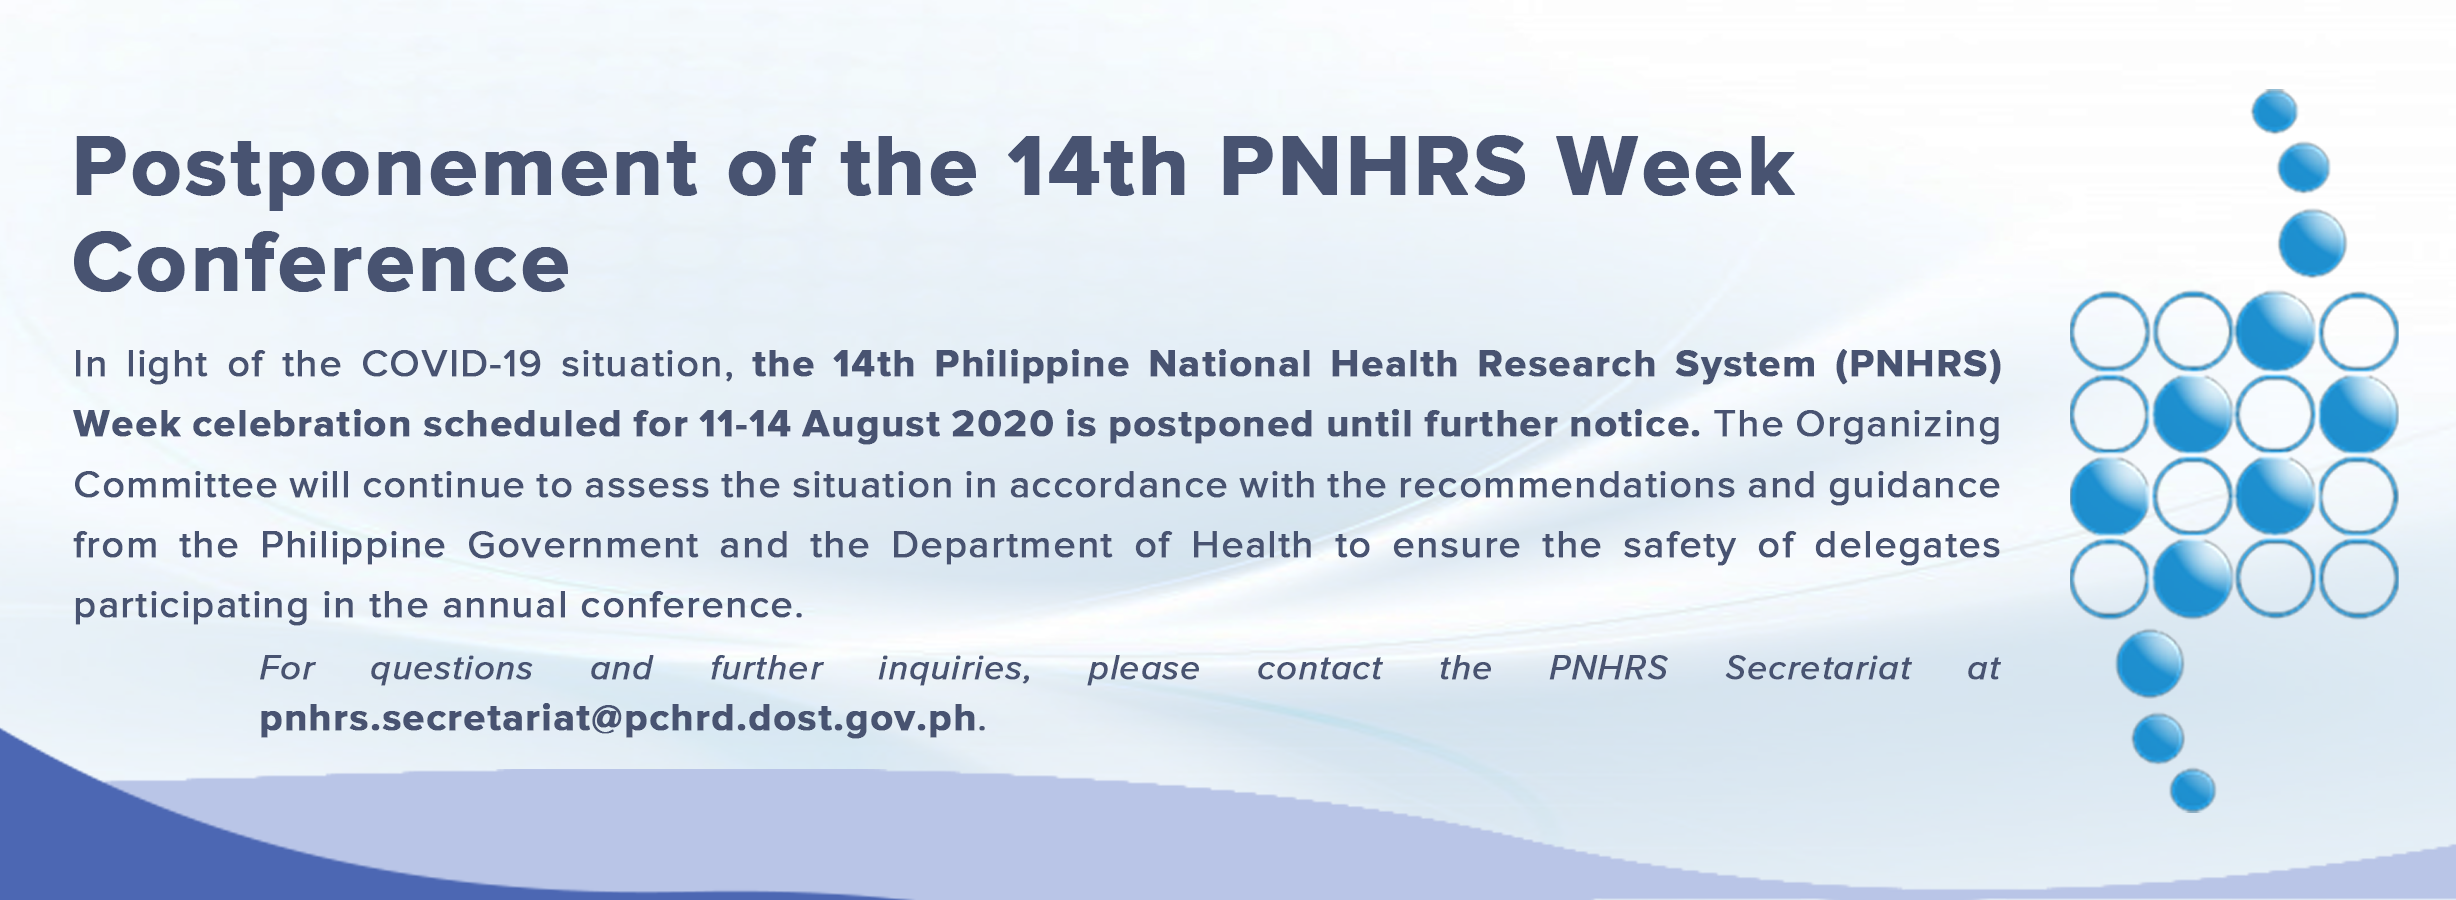 Postponement of 14th PNHRS Week Conference